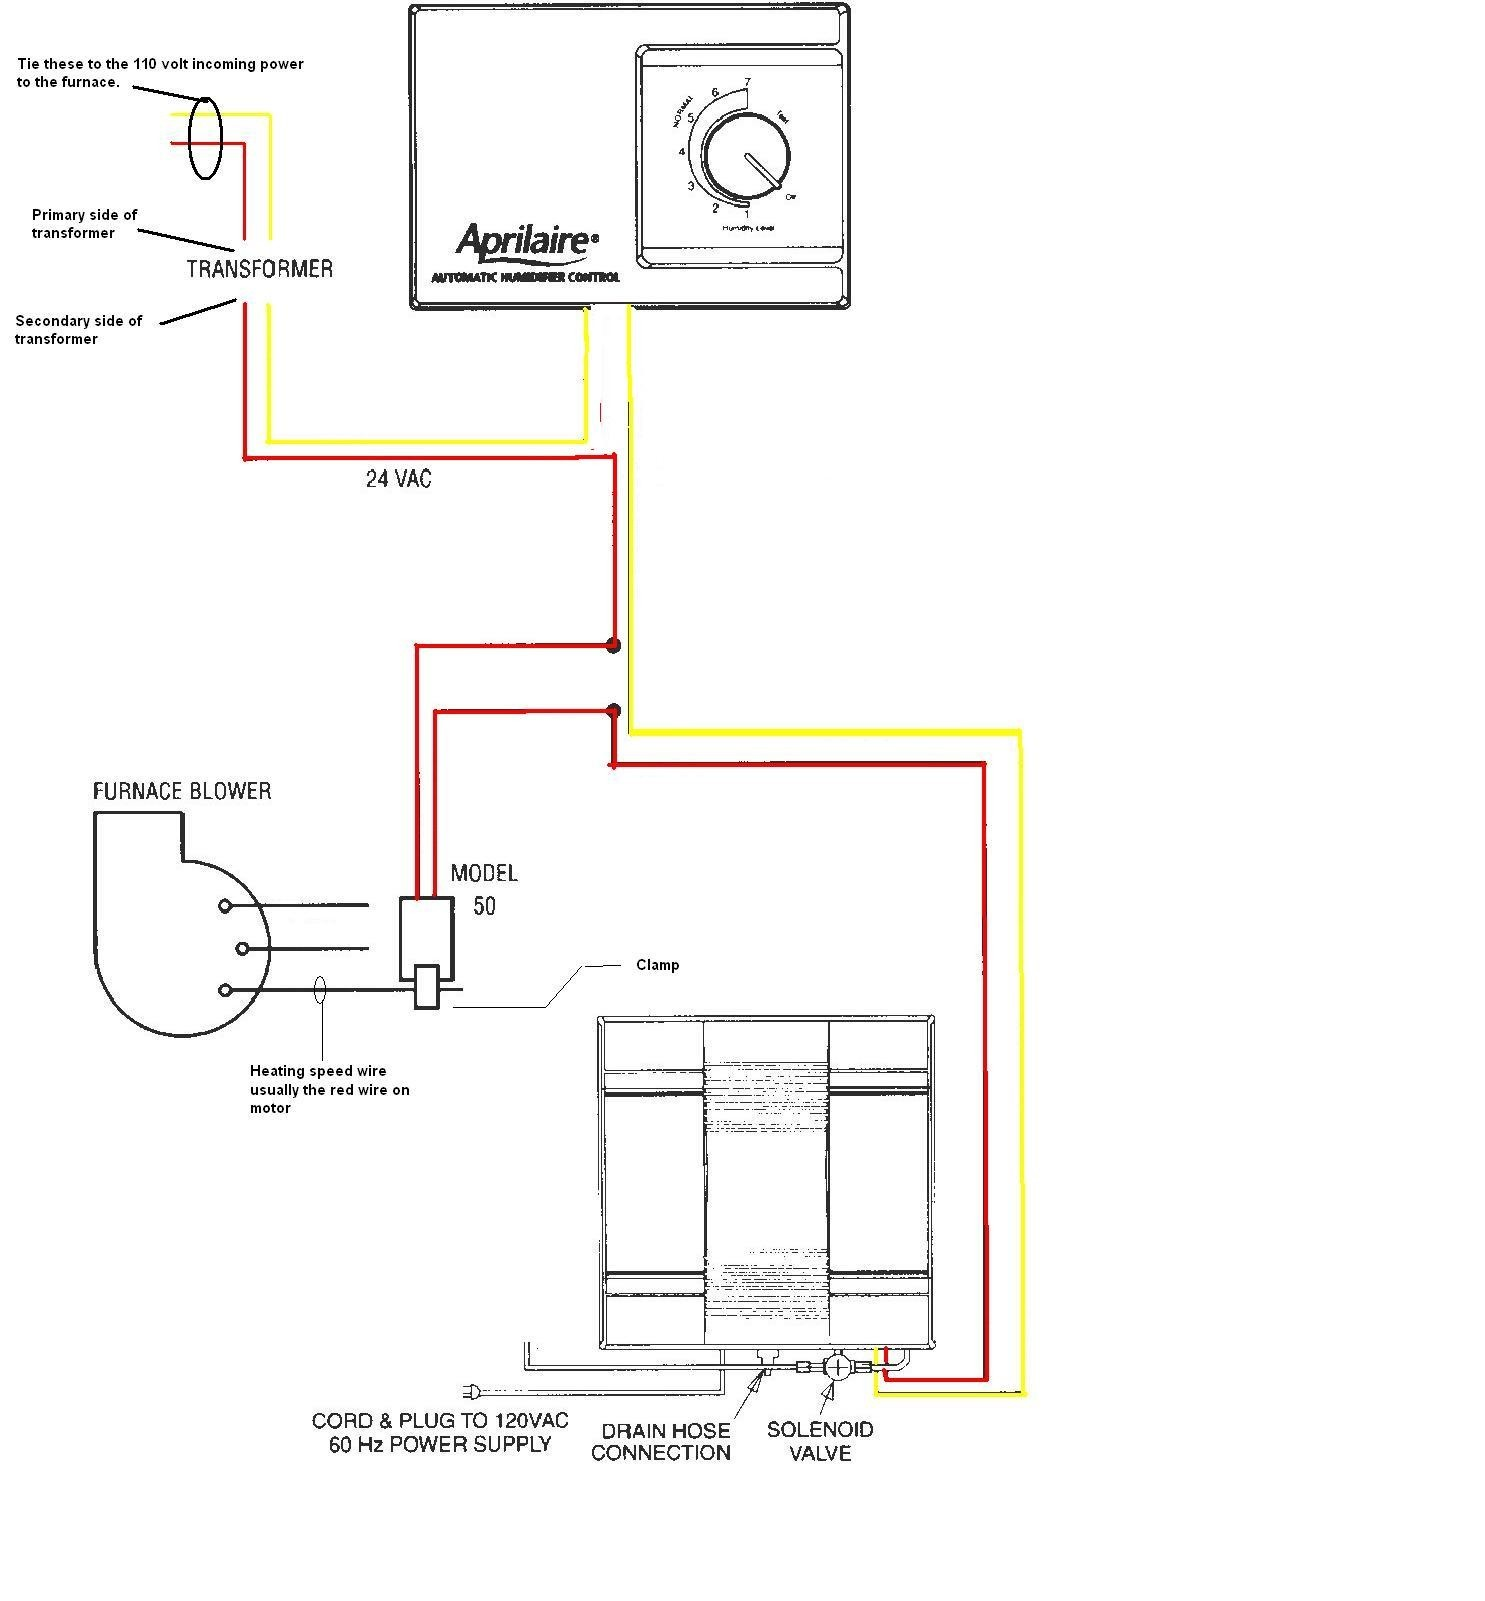 Aprilaire 760 Wiring Diagram Aprilaire Humidifier Wiring Diagram Including Aprilaire Humidistat Of Aprilaire 760 Wiring Diagram